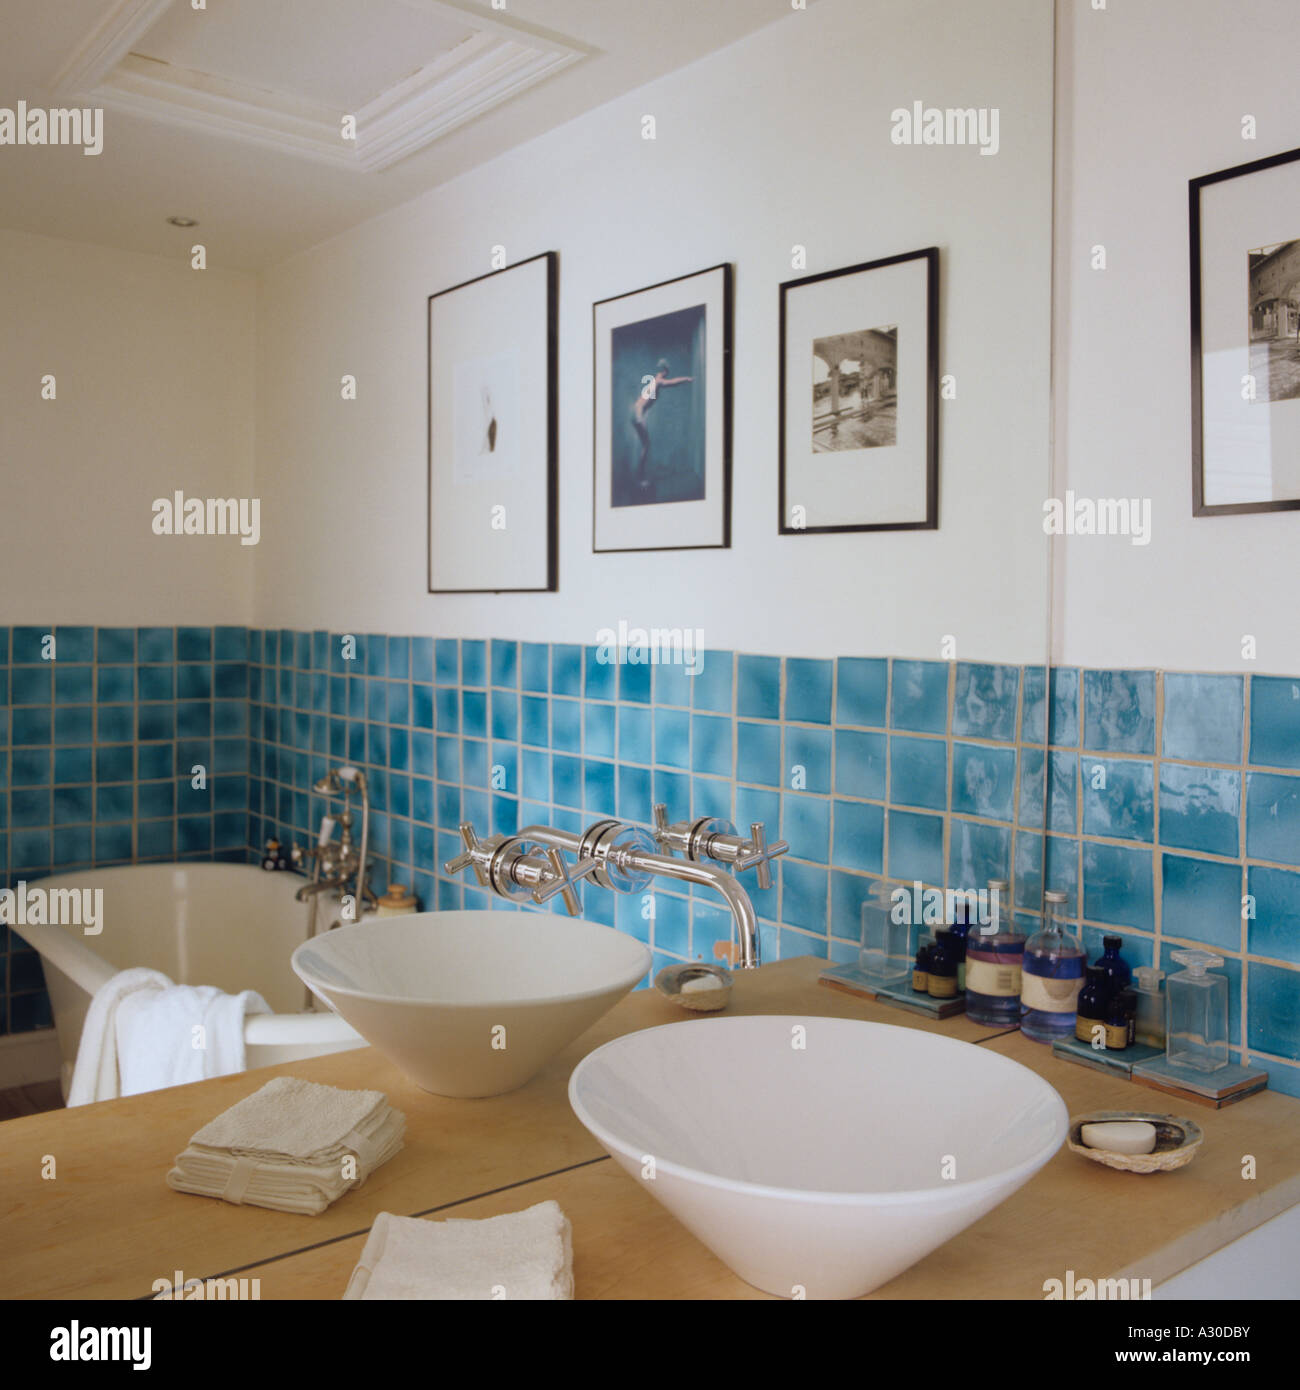 Contemporary wash basin in front of mirror in bathroom with turquoise tiles. Contemporary wash basin in front of mirror in bathroom with